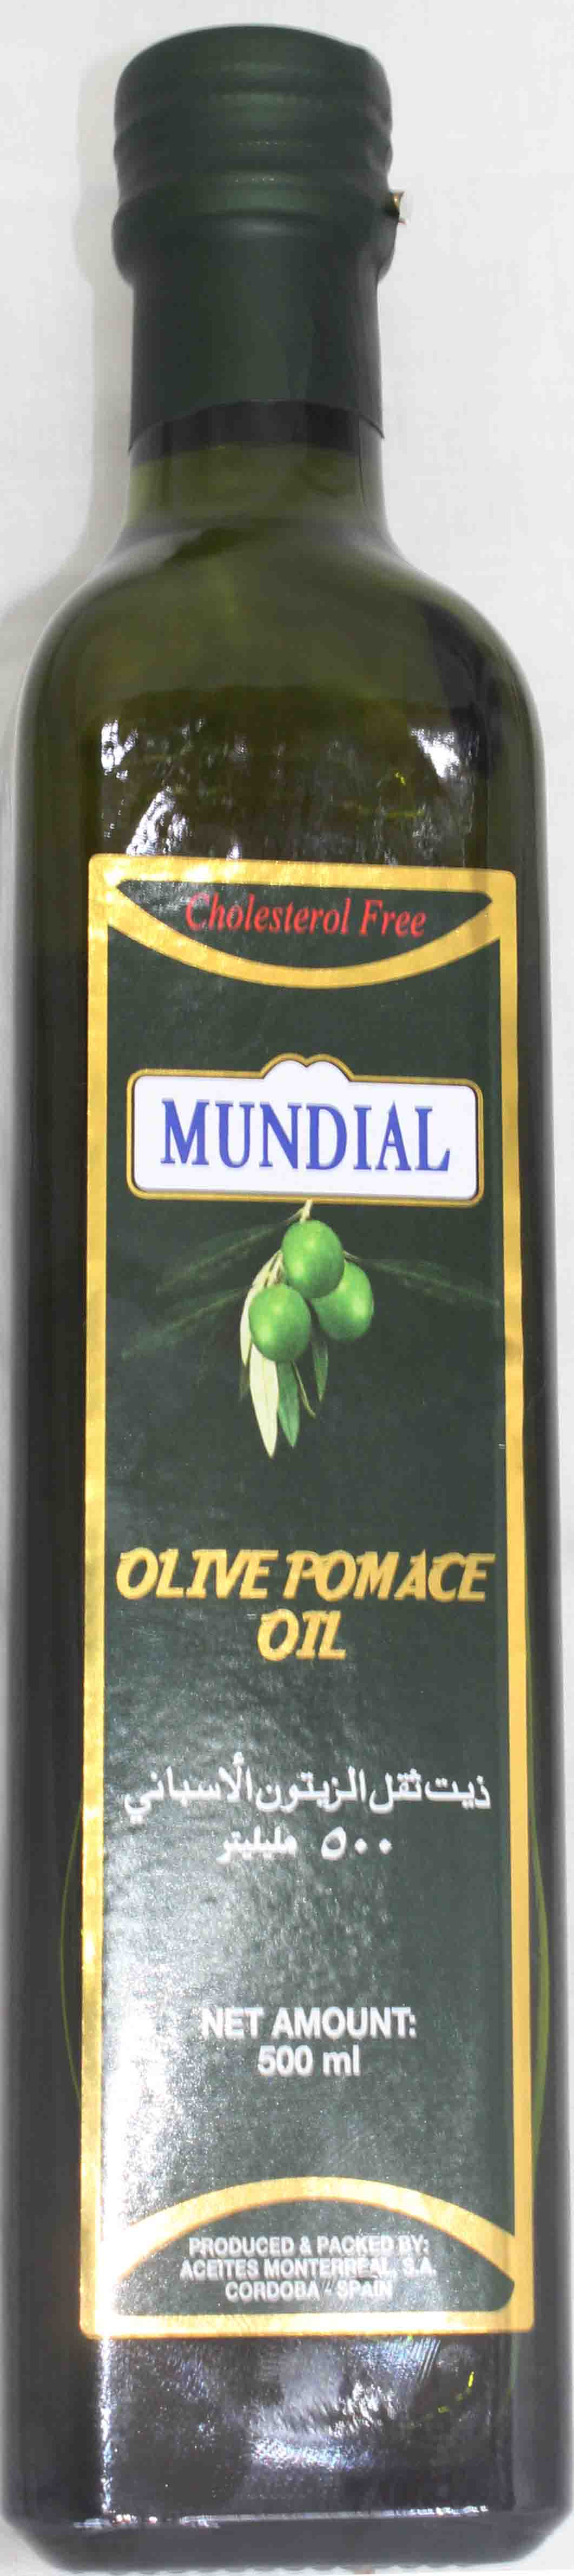 Mundial Pomace Olive Oil G/Jar 500ml